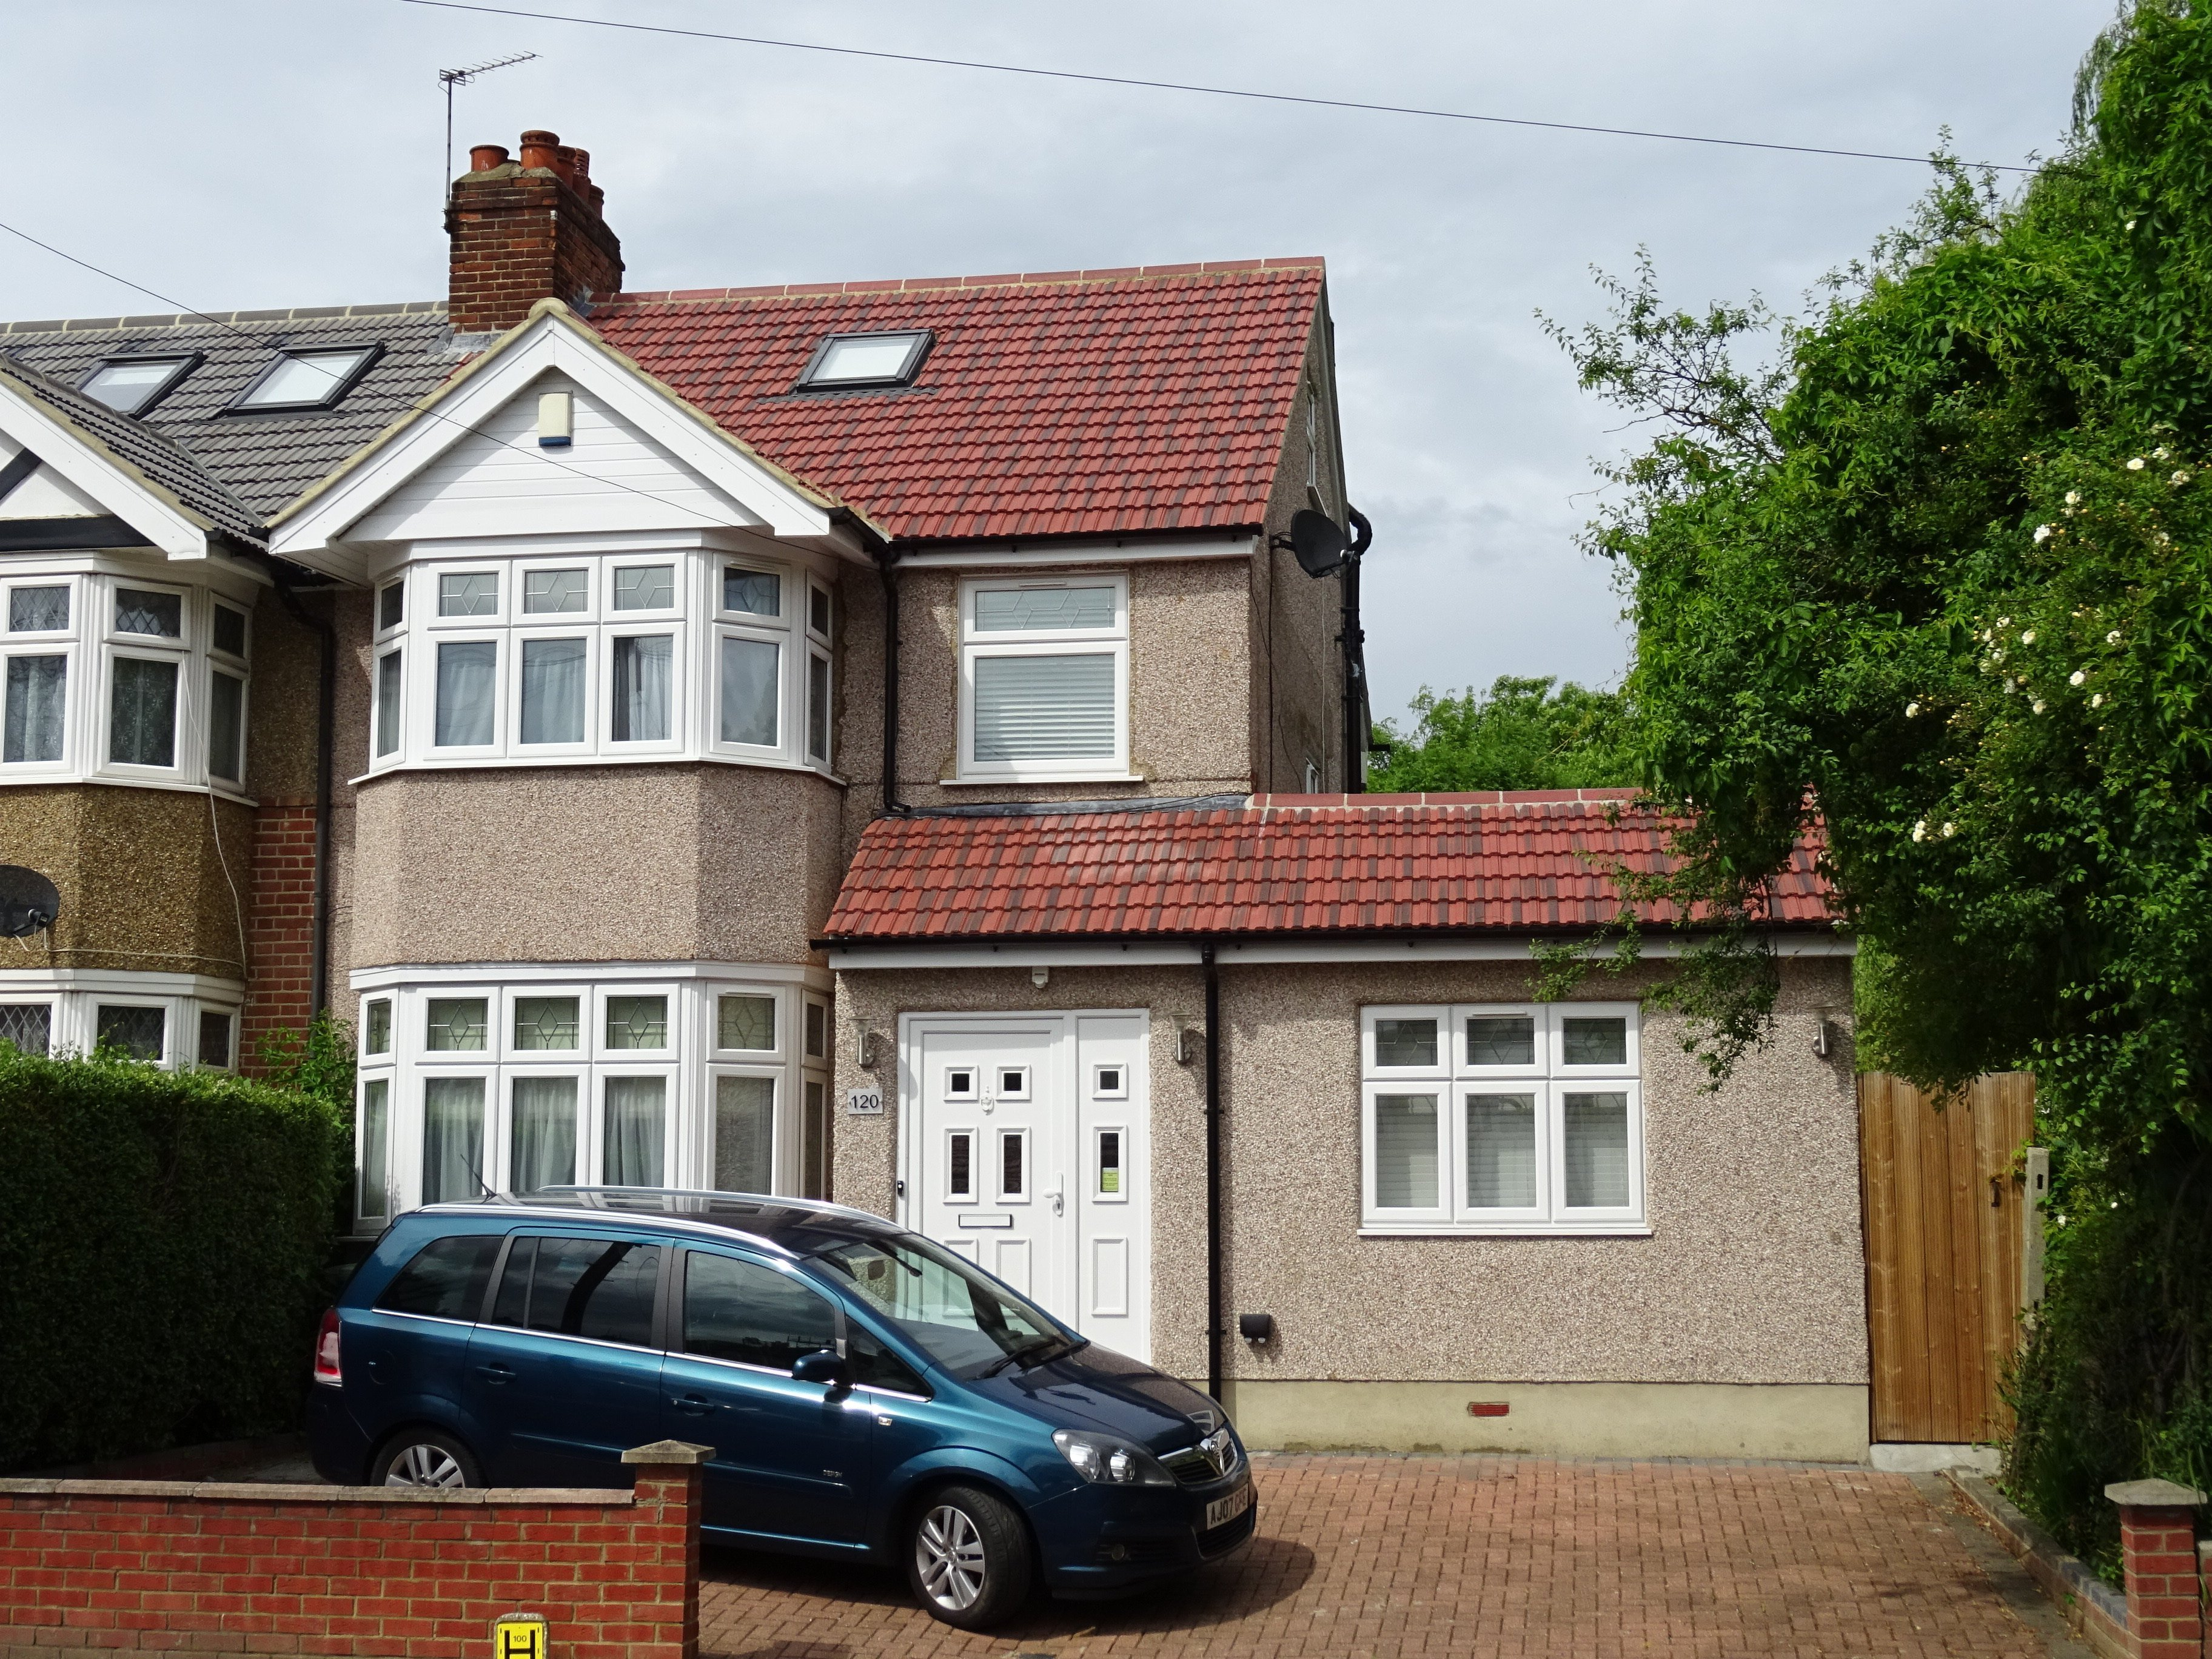 Homebuyer S Reports In Hillingdon And North West London